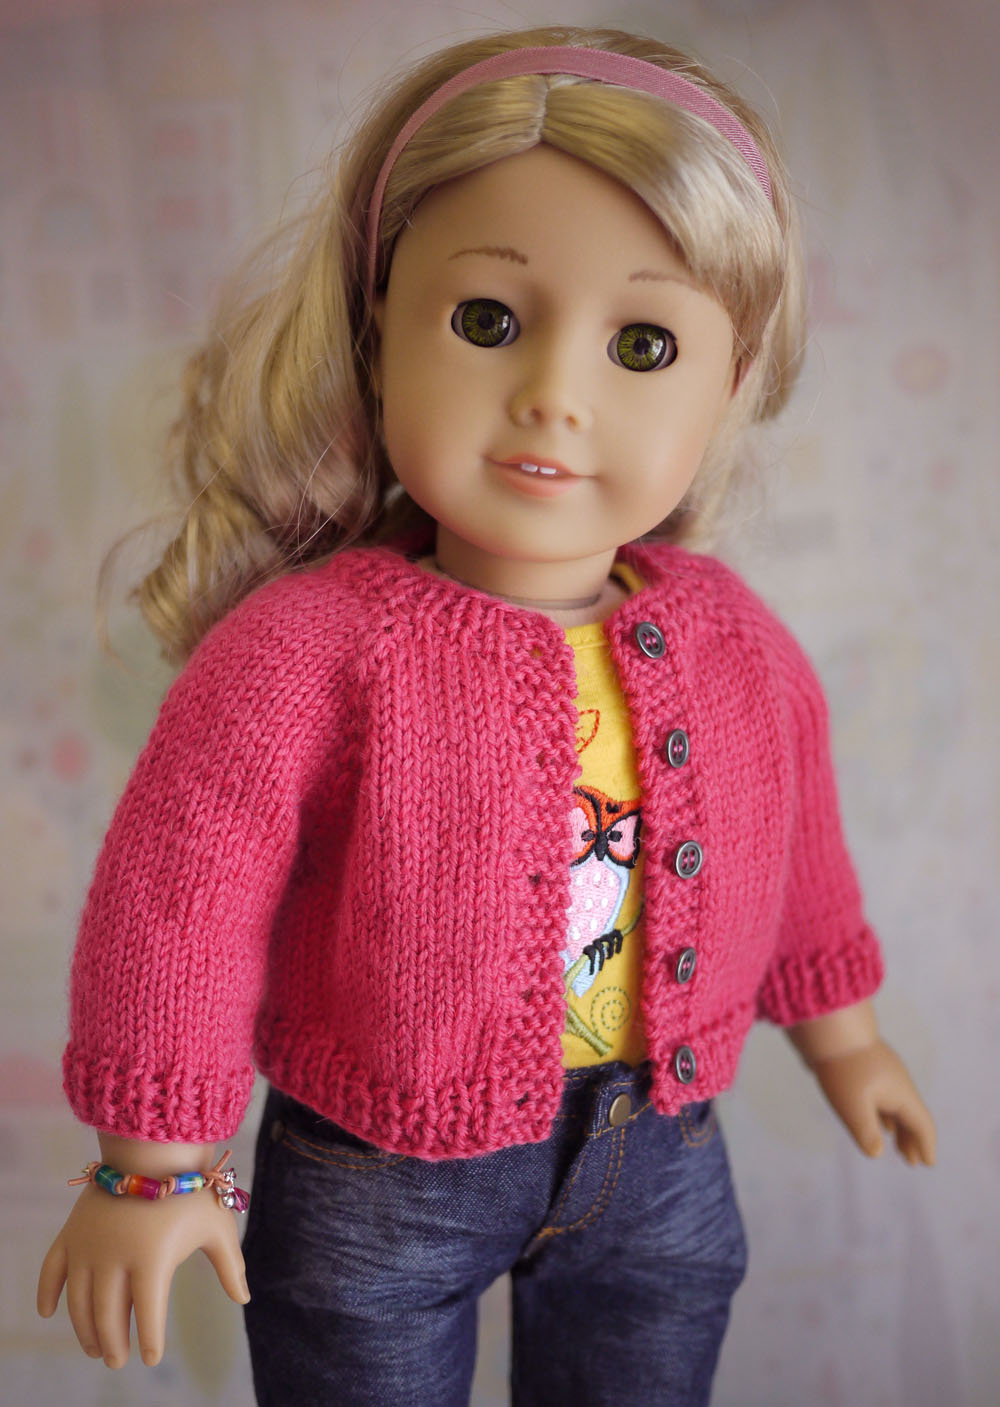 Free Knitting Patterns Doll Clothes American Girl : American Girl Dolls Cindy Rice Designs